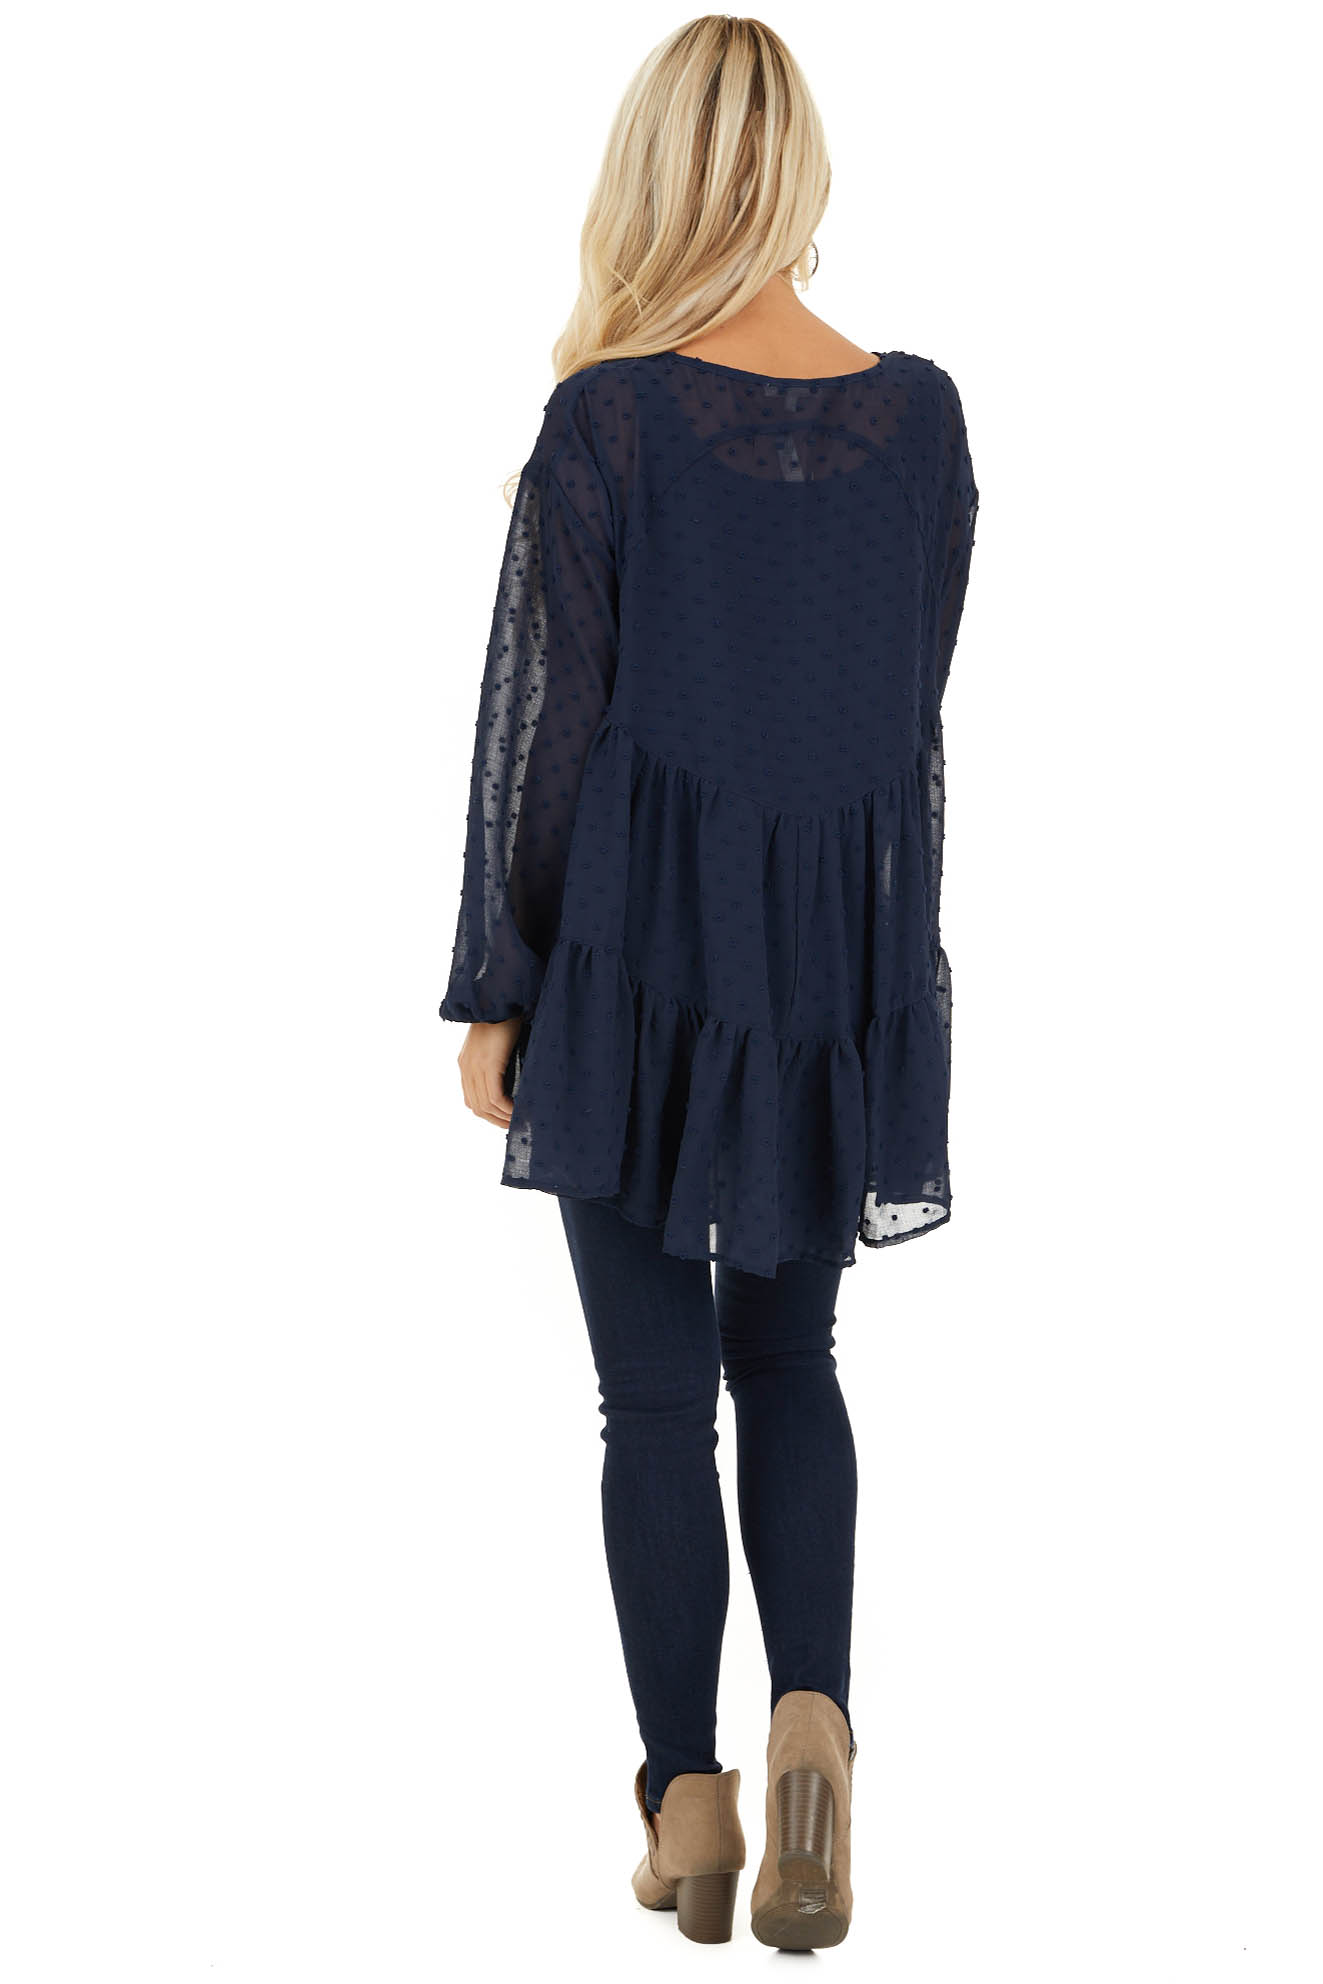 Midnight Navy Sheer Tunic Top with Swiss Dots and Self Tie back full body